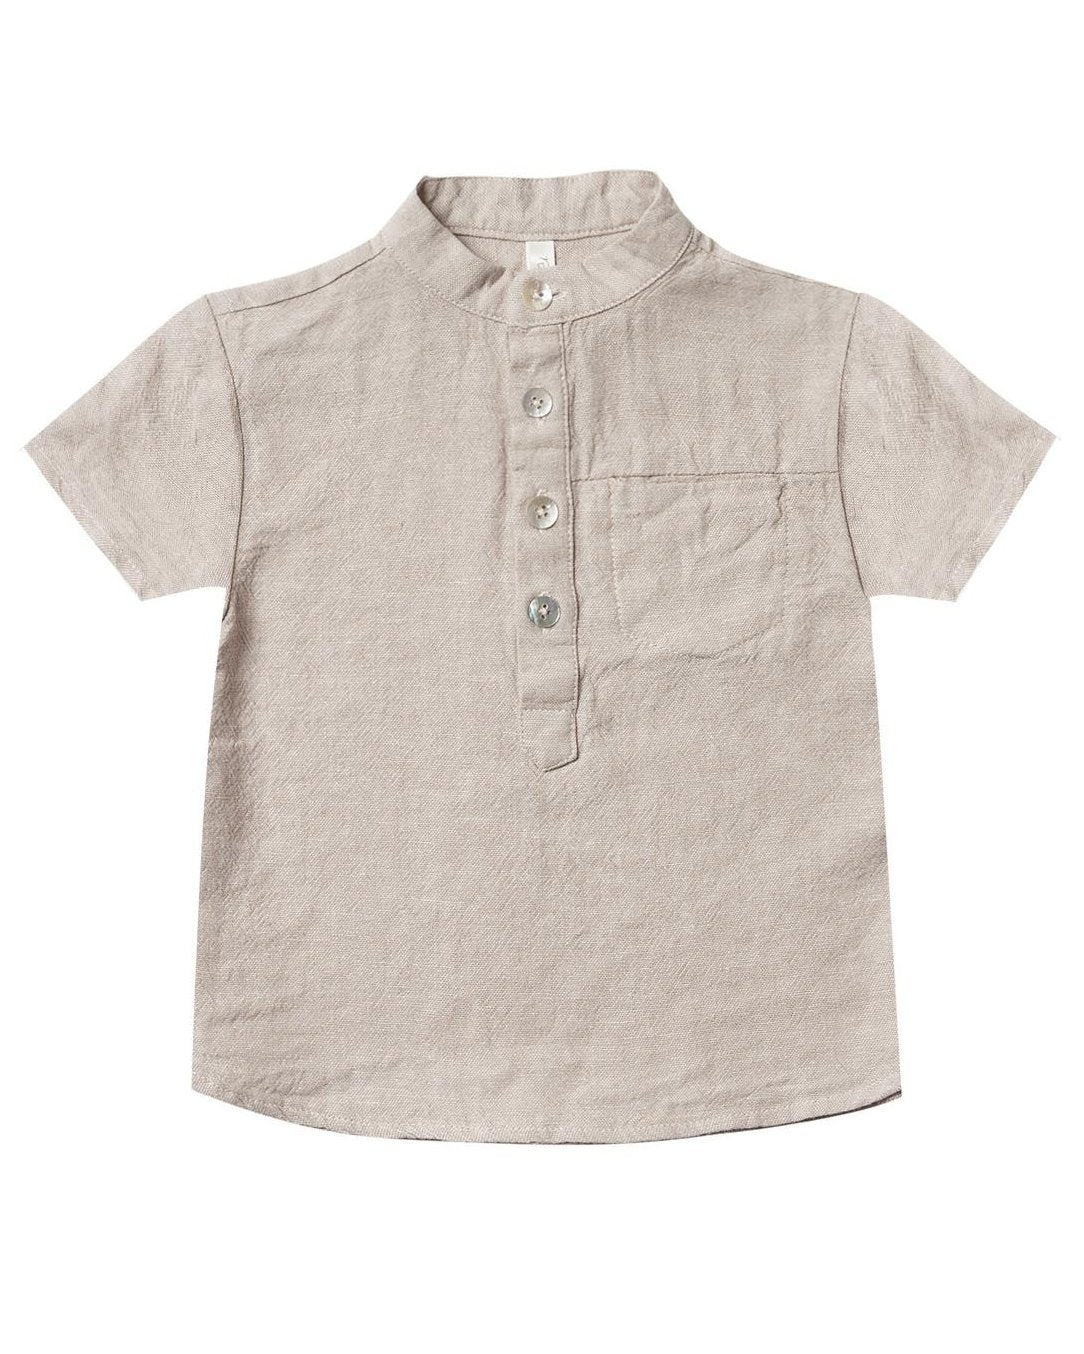 Little rylee + cru baby boy mason shirt in flax